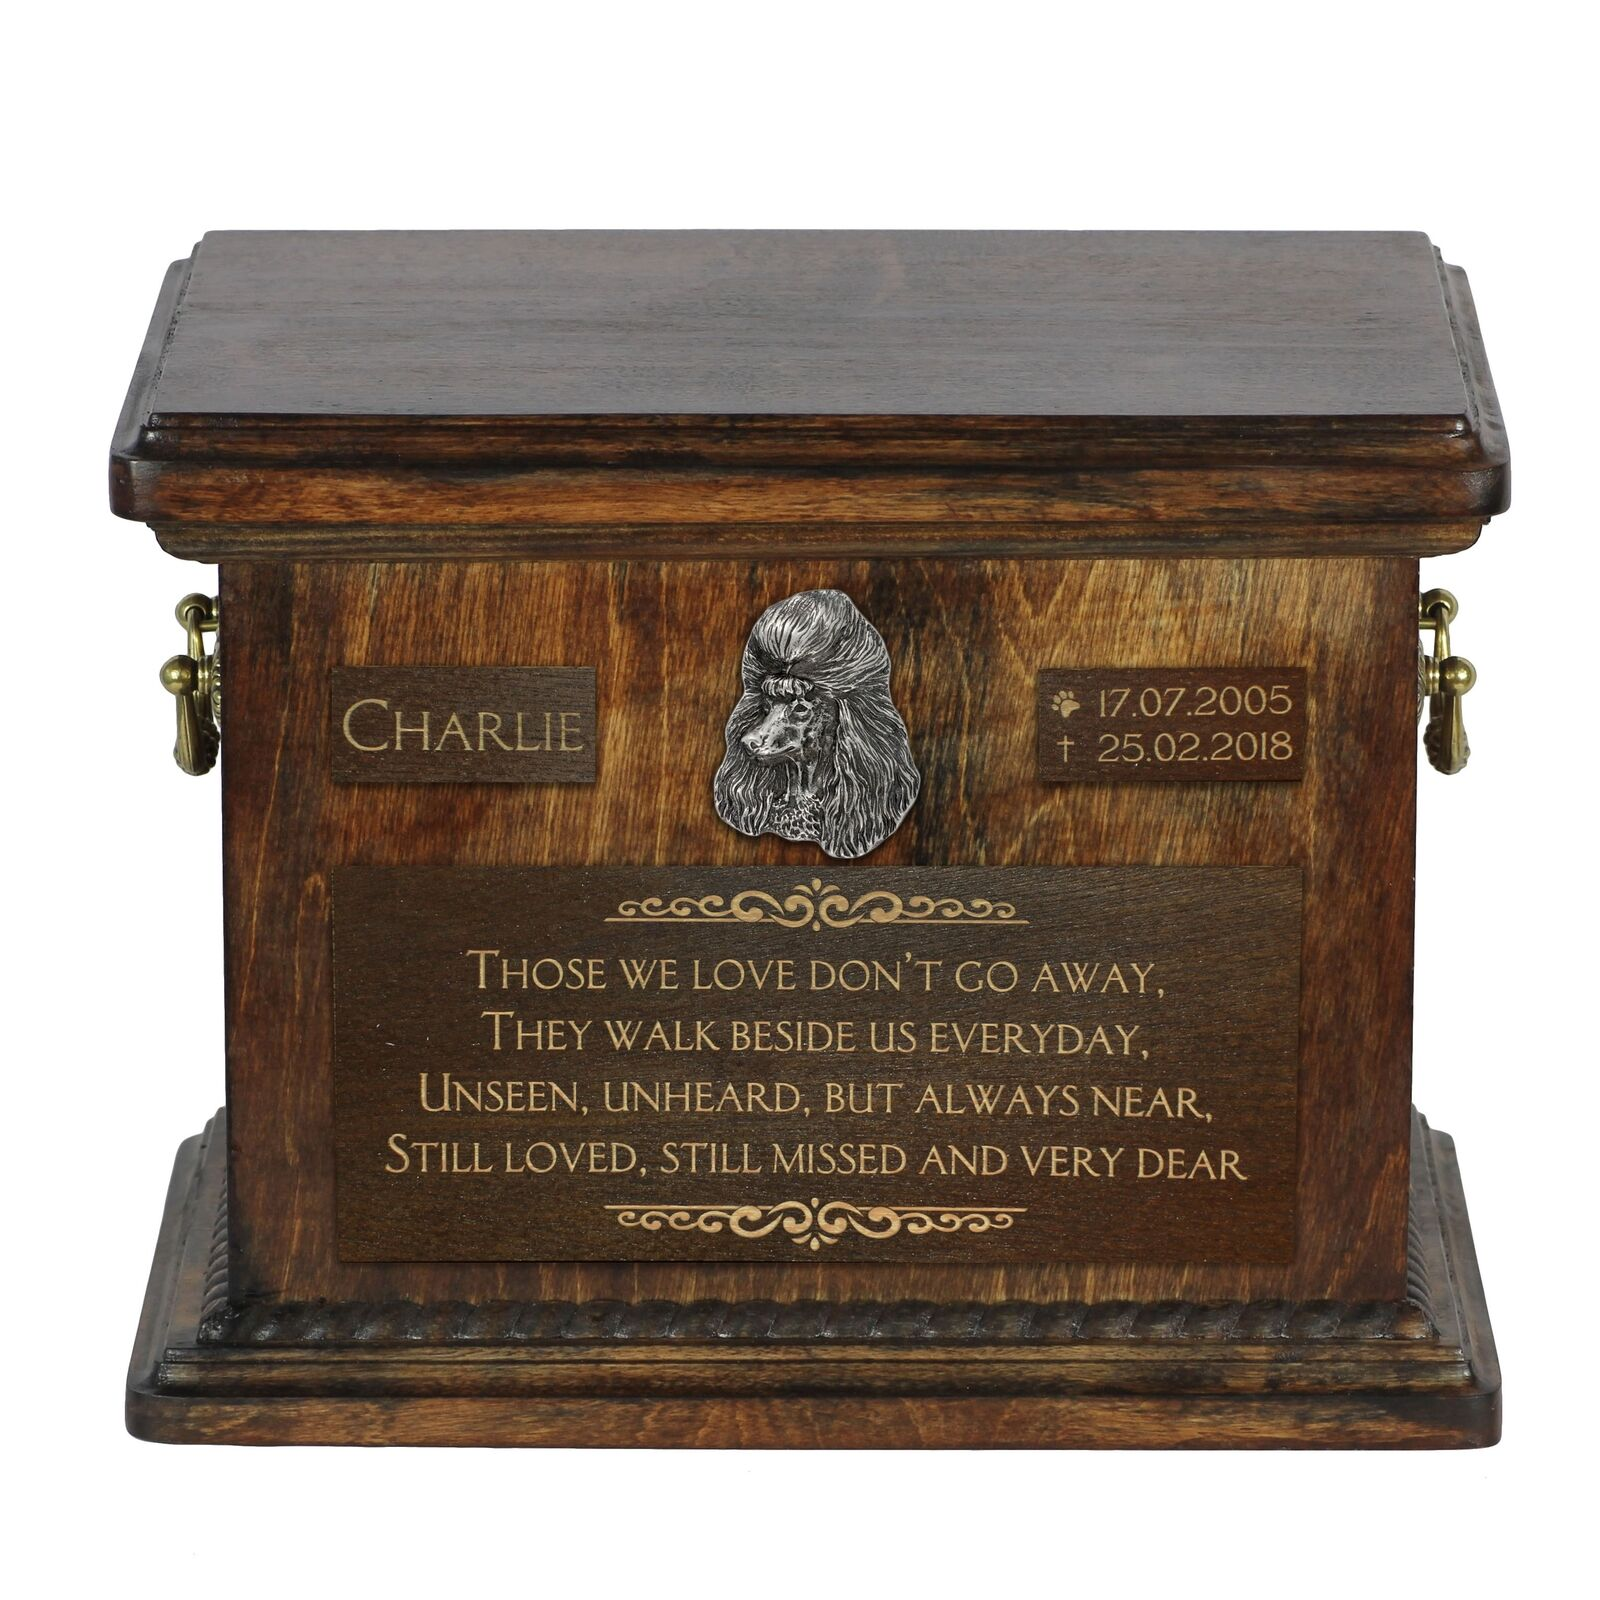 Poodle - Urn for dog's ashes with image of a dog, Art Dog